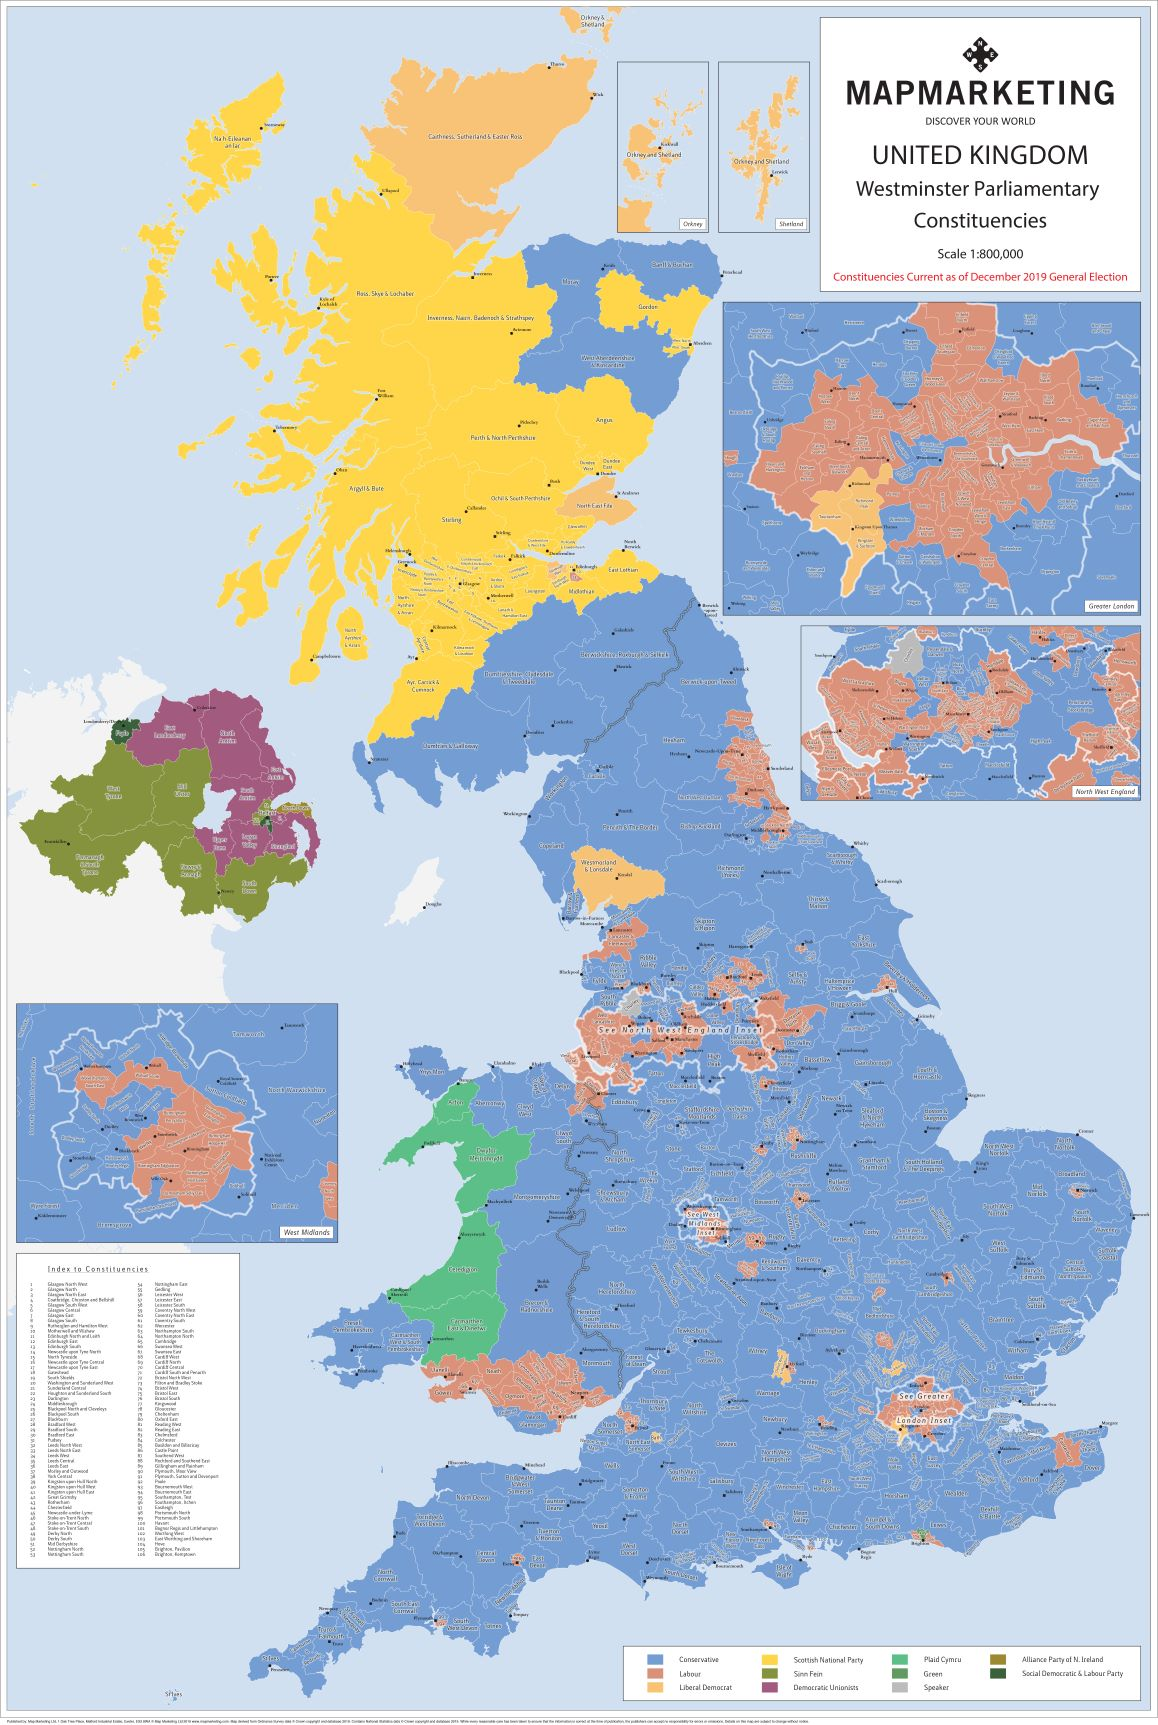 December 2019 General Election wall map